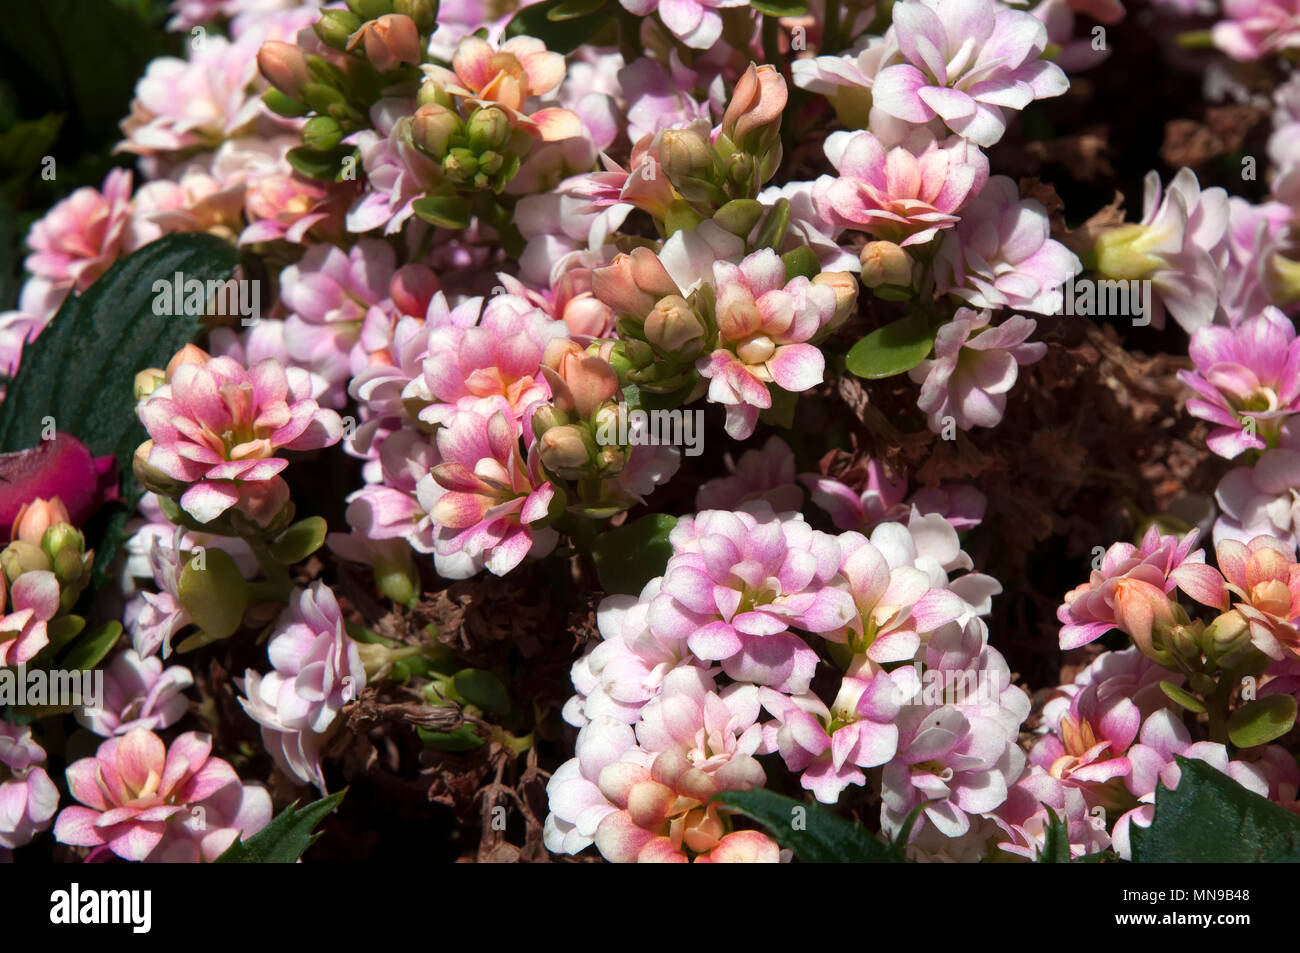 Sydney Australia Shrub With Small Pink Flowers Stock Photo